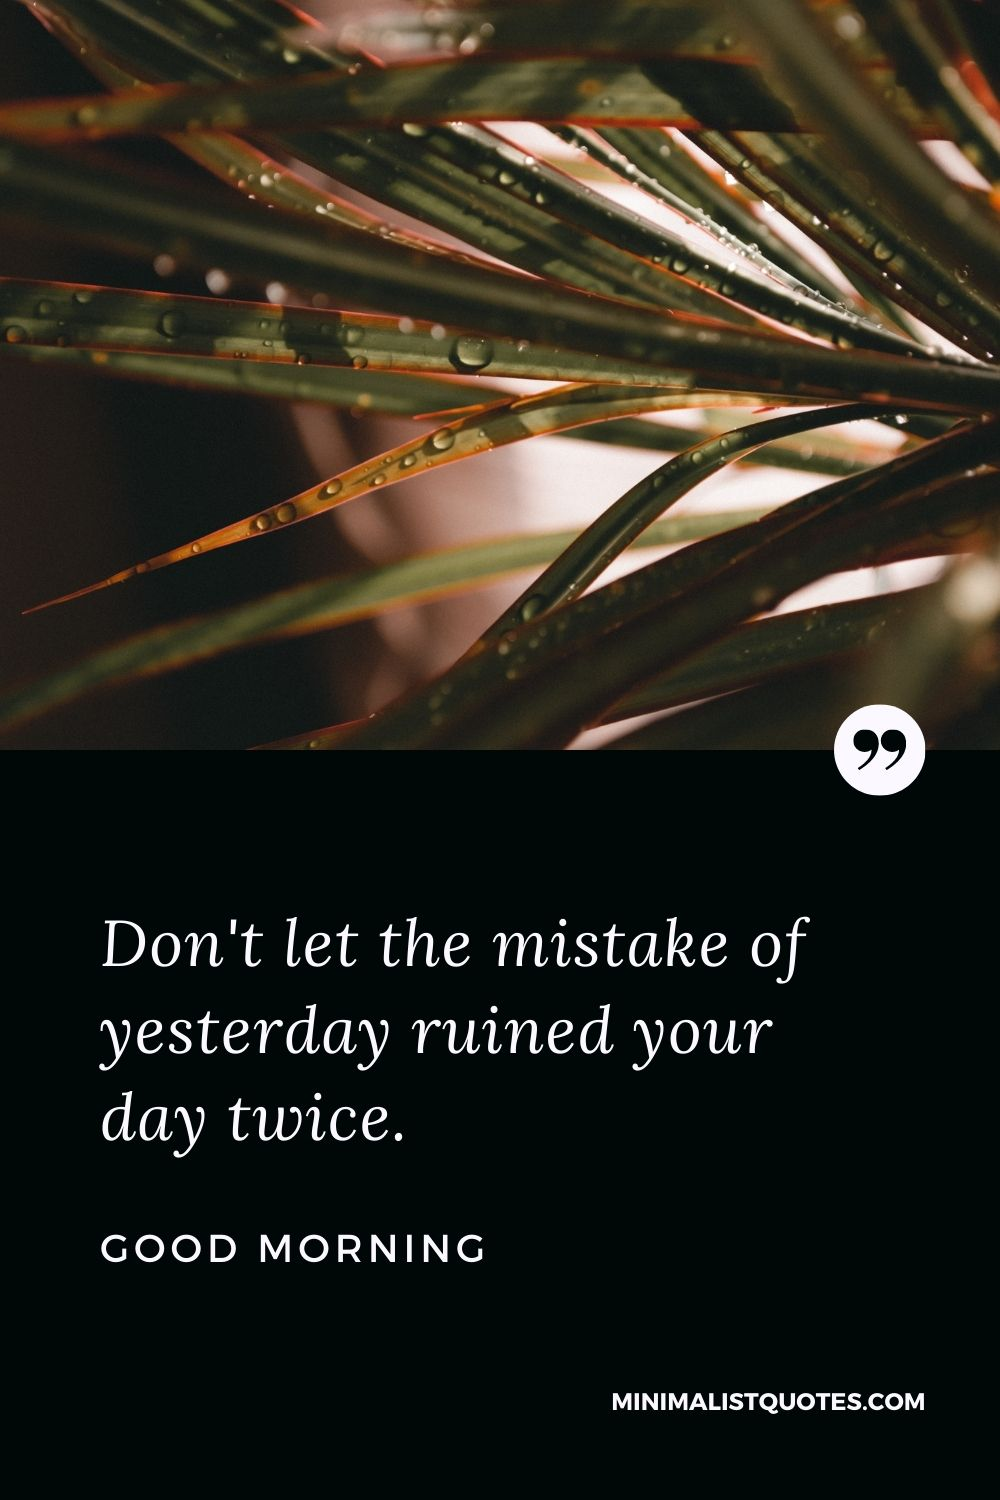 Good Morning Wish & Message With Image: Don't let the mistake of yesterday ruinedyour day twice.